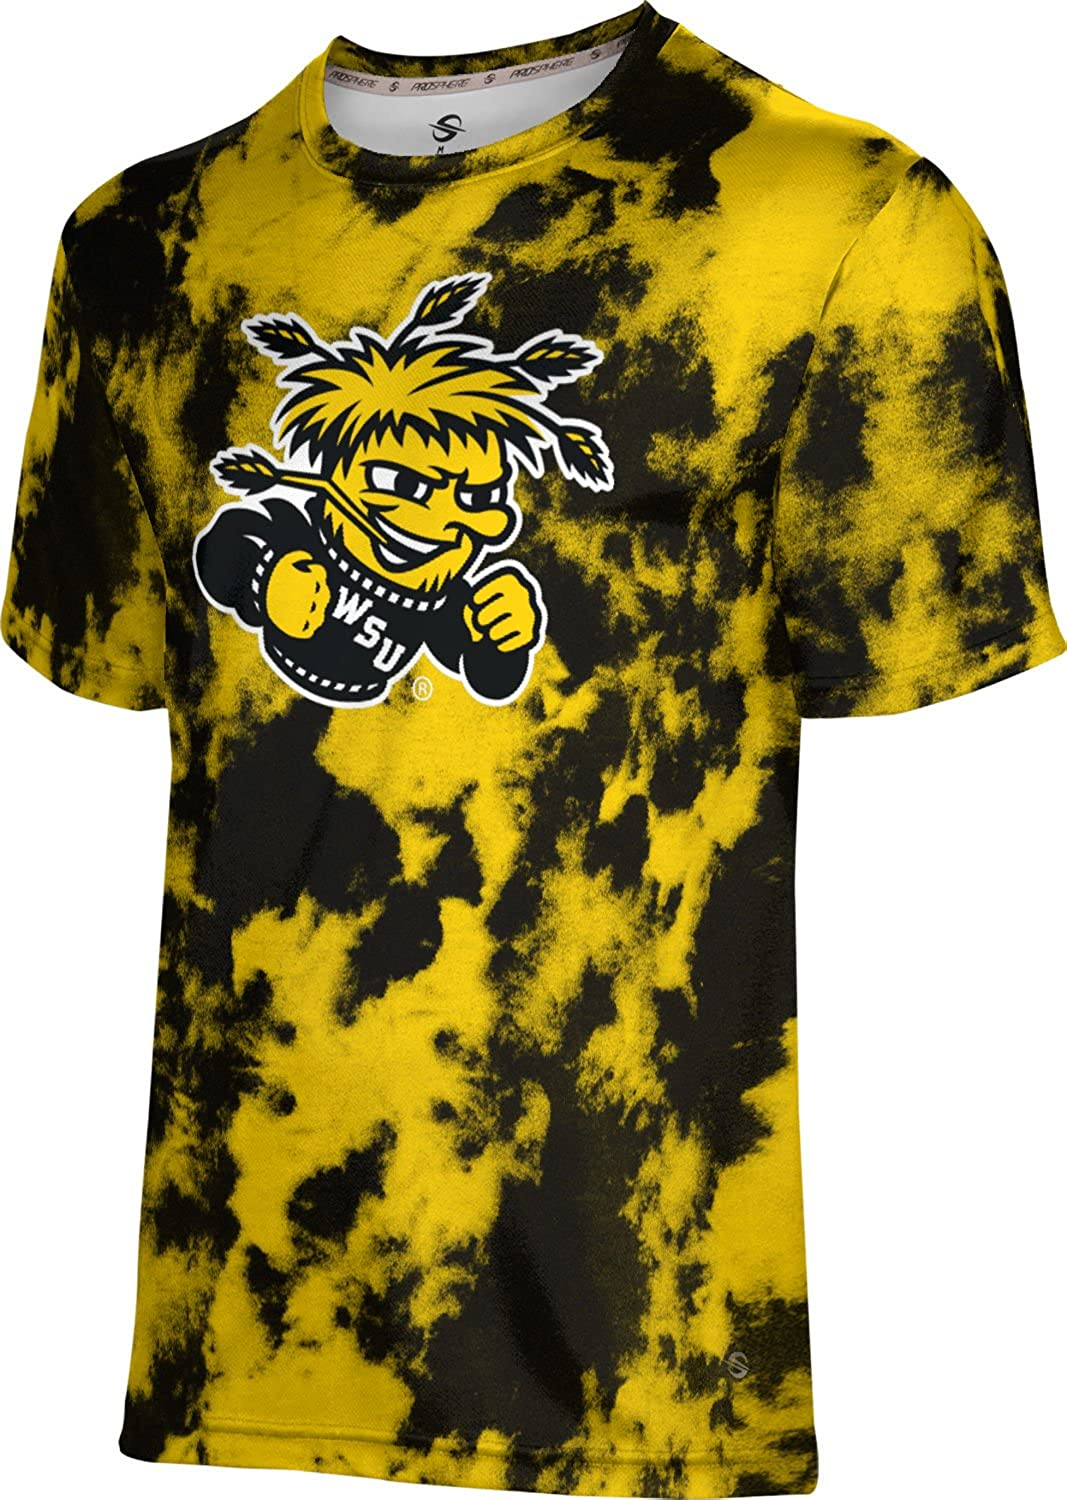 ProSphere Omaha Super Special SALE held Mall Wichita State University T-Shirt Men's Gr Performance